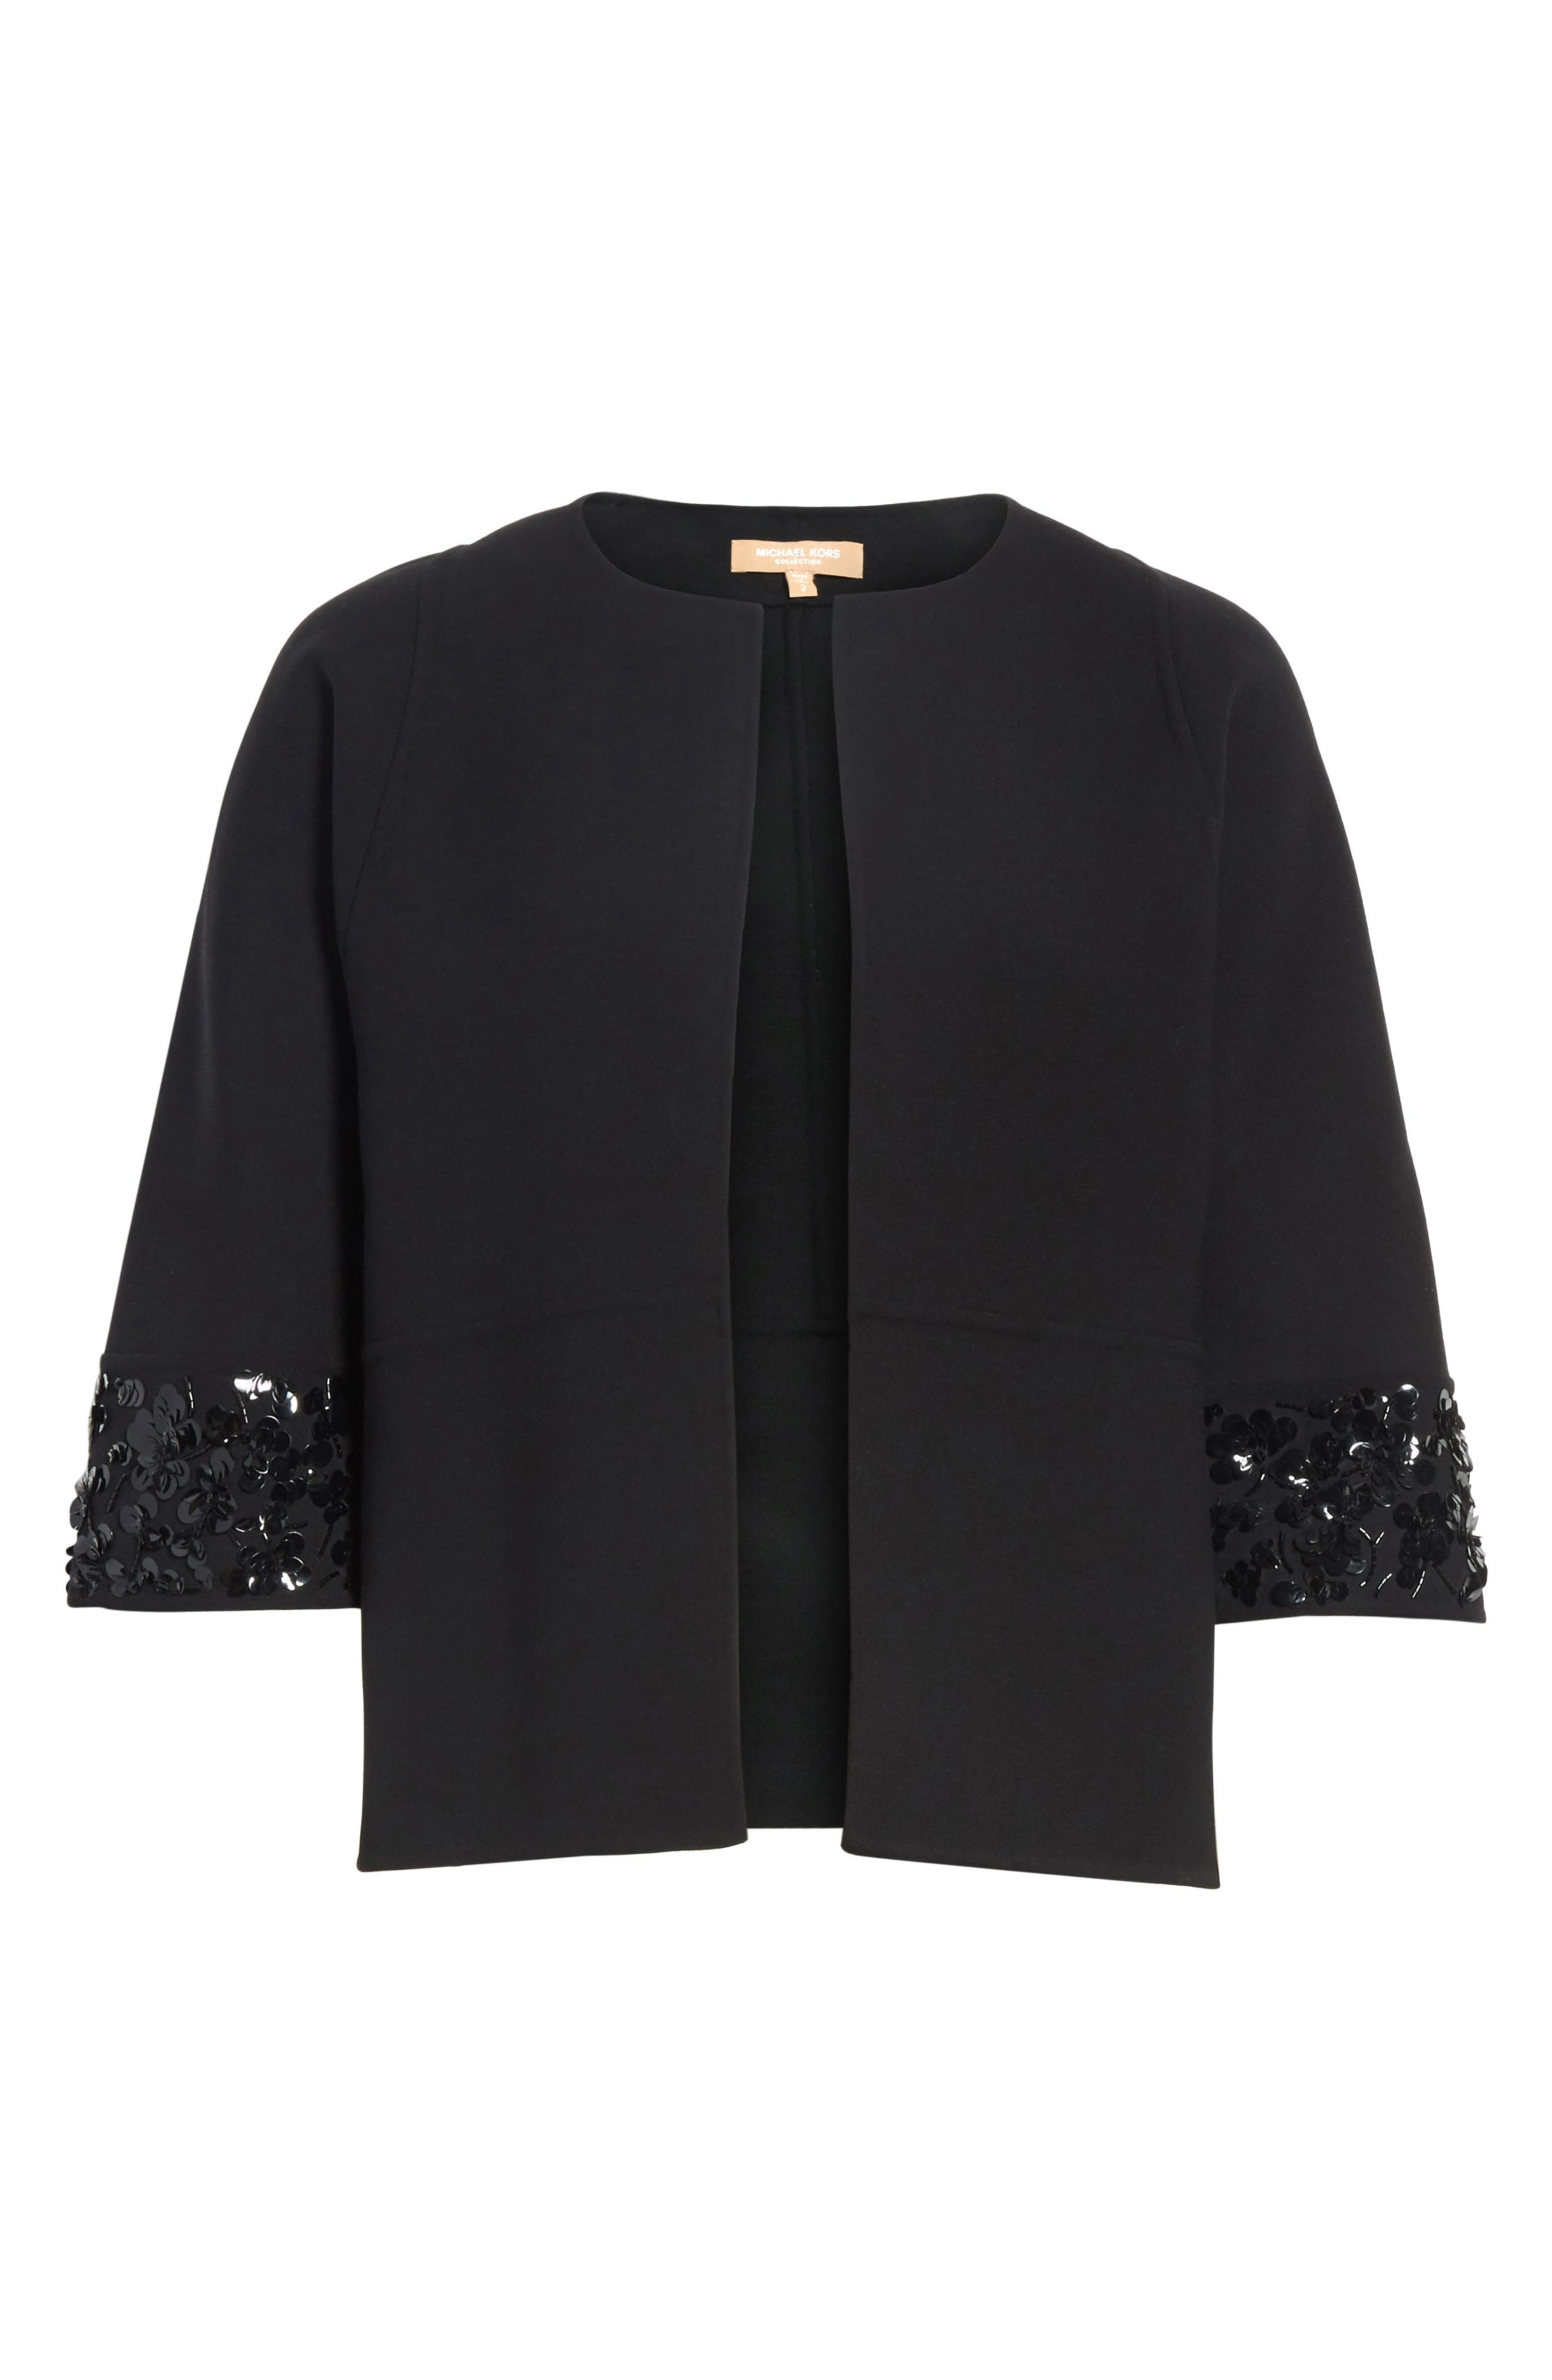 Embellished Jacket,                             Alternate thumbnail 7, color,                             Black